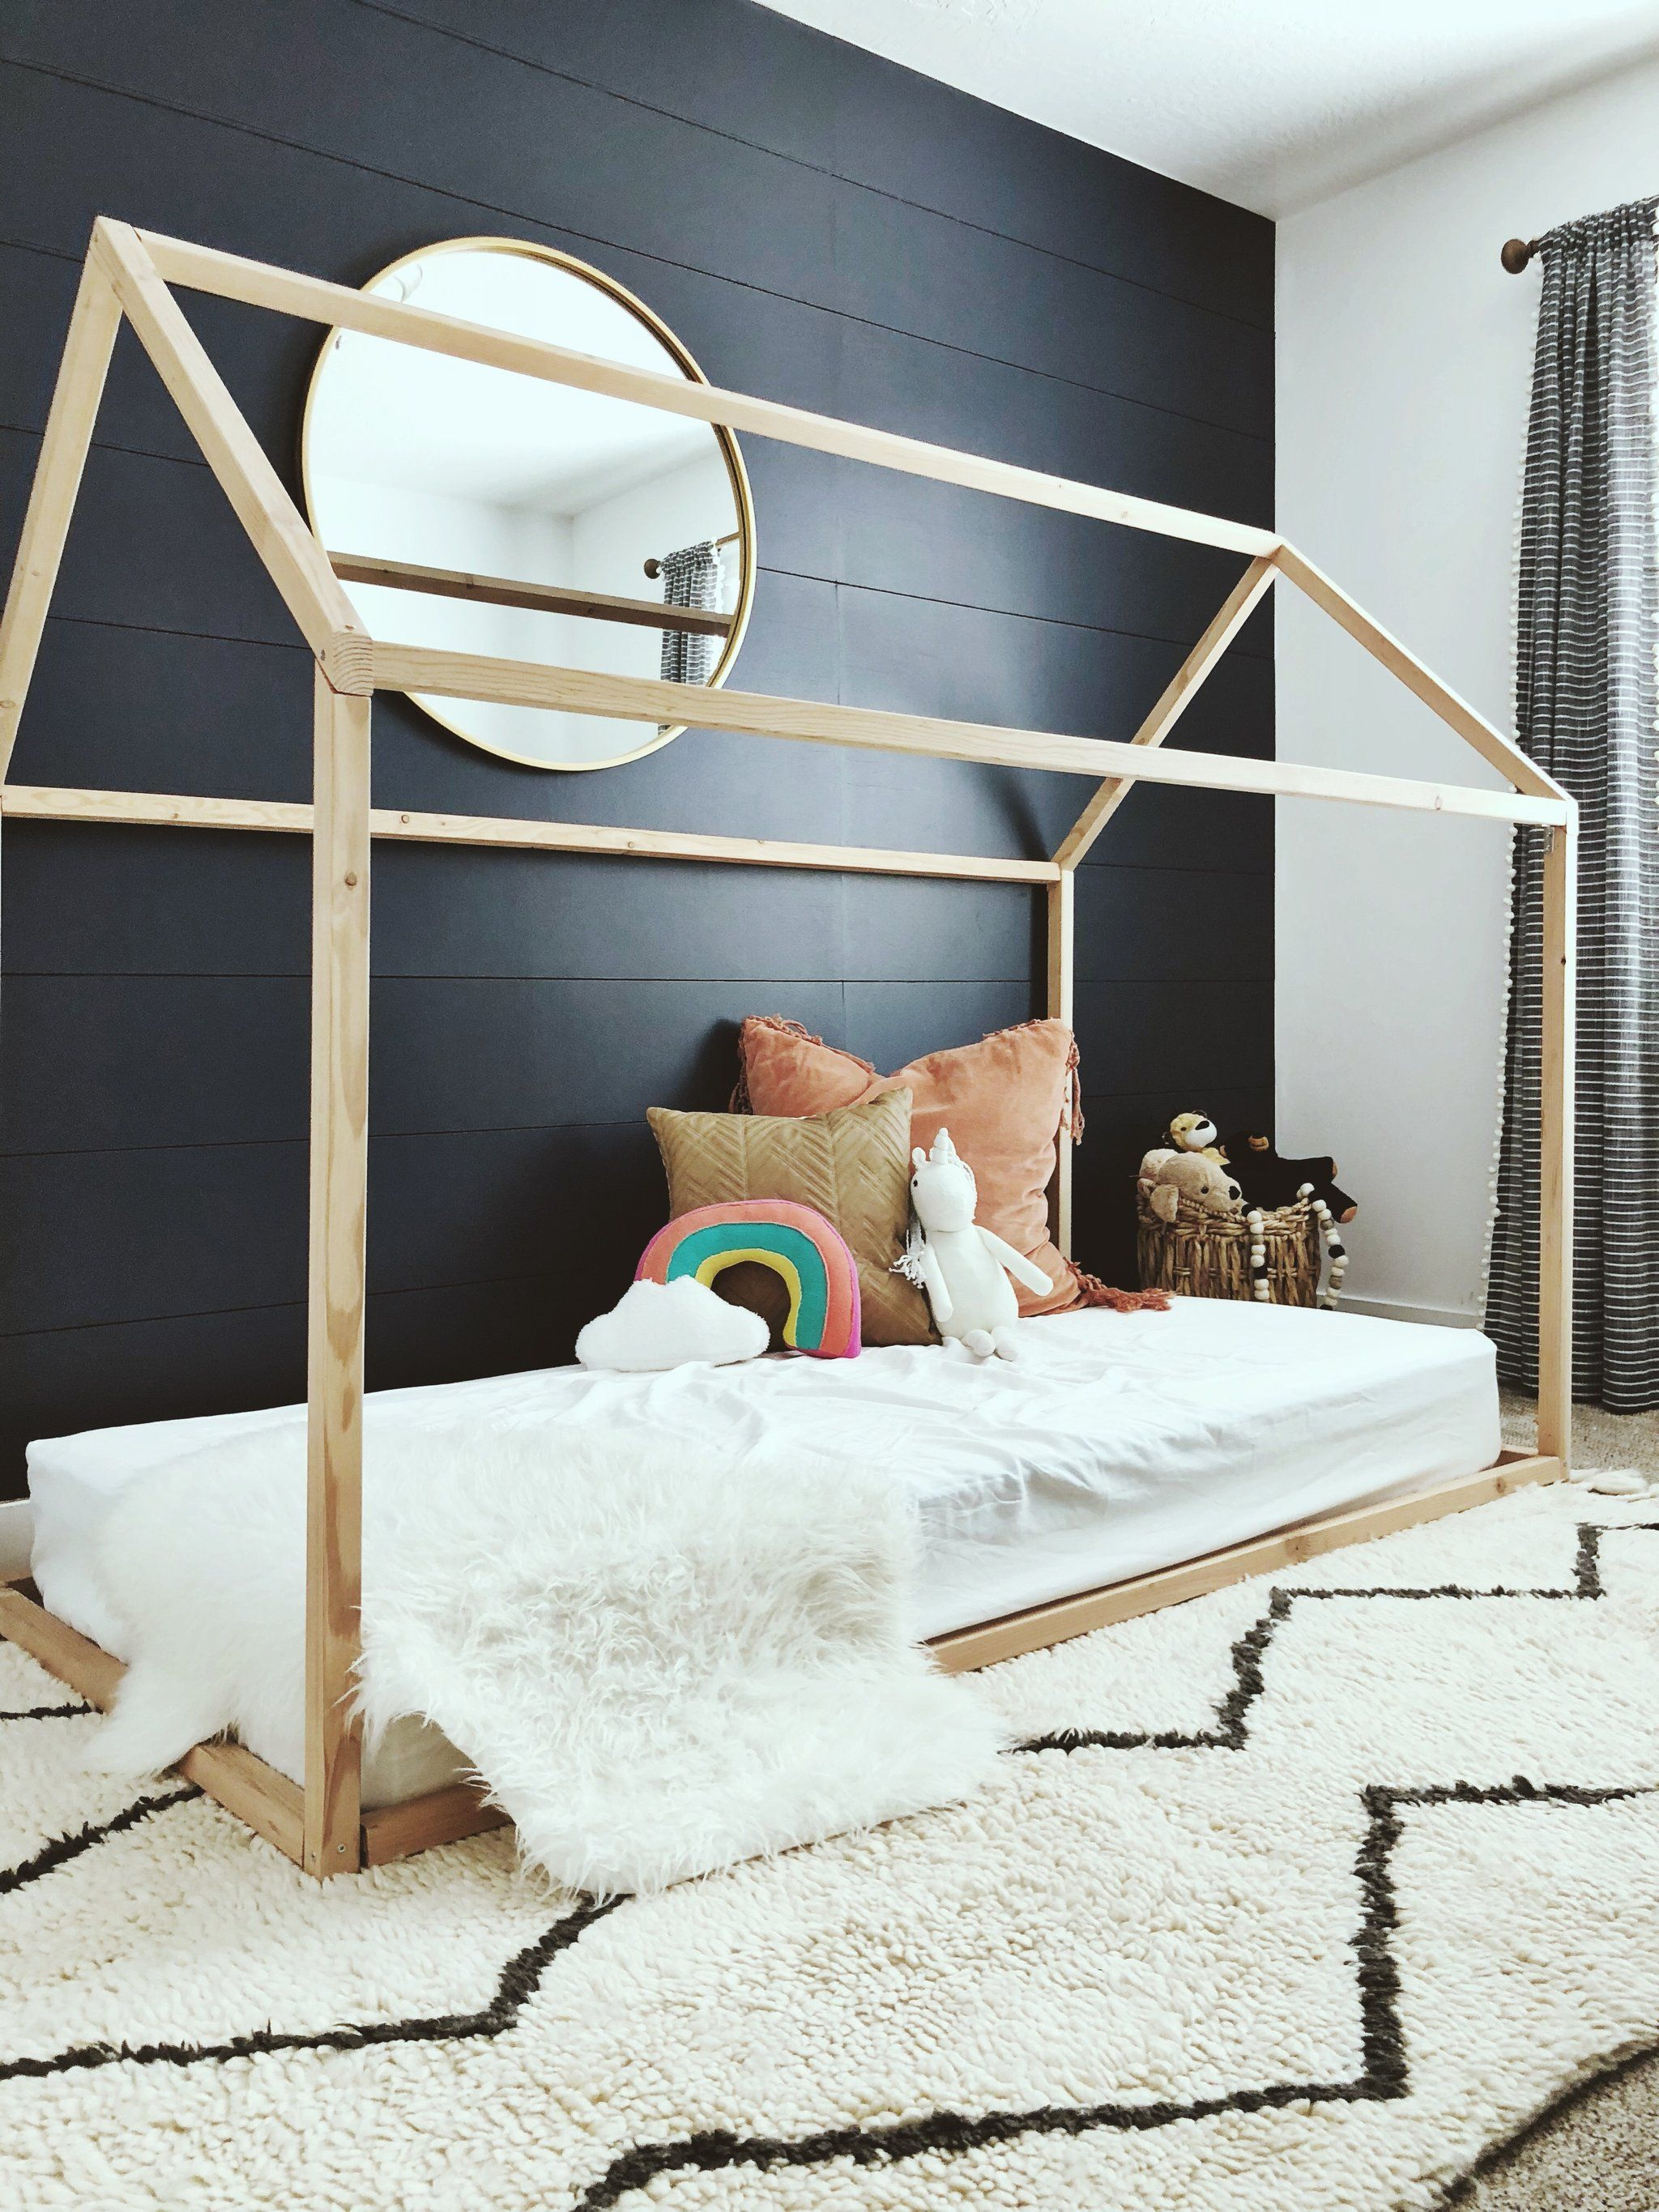 House Bed House Bed For Kids House Bed Frame House Bed